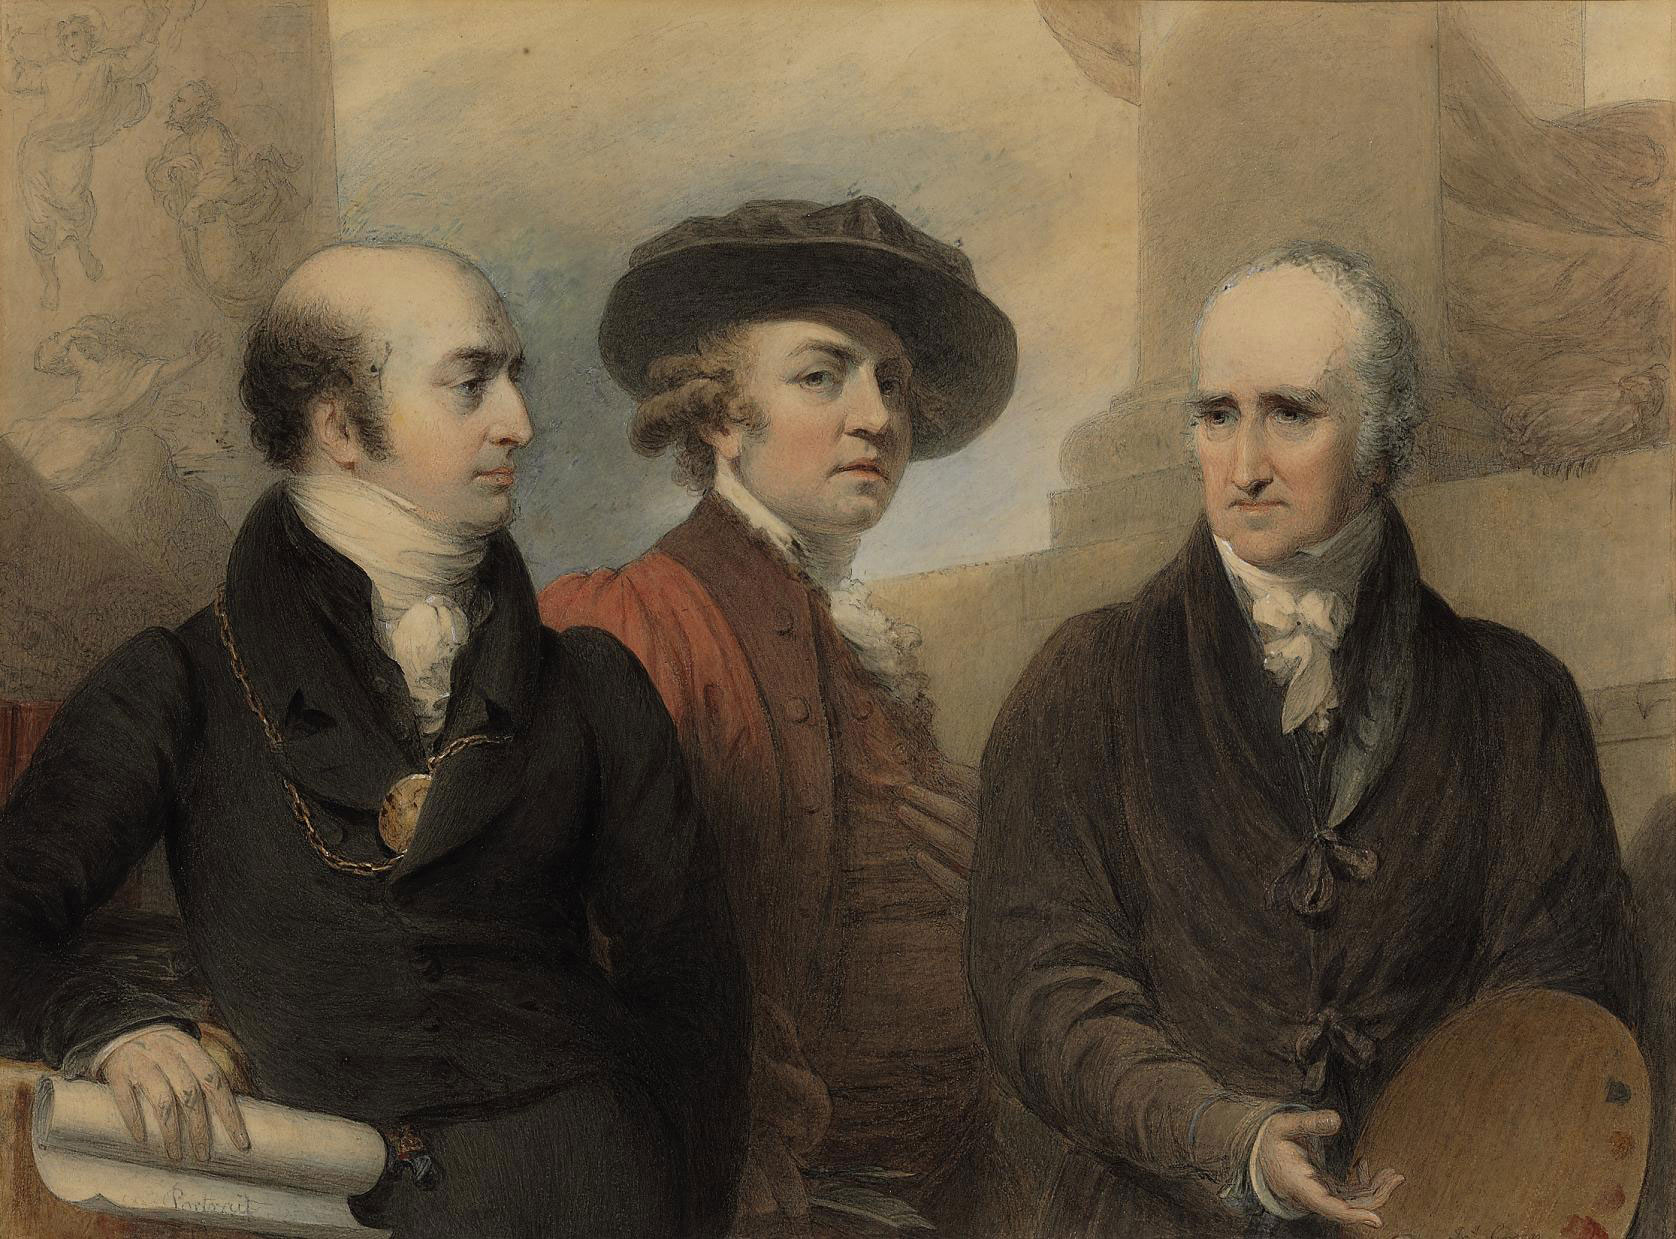 Portrait of the first three Presidents of the Royal Academy: Sir Joshua Reynolds (1769-1792), Benjamin West (1792-1820), and Sir Thomas Lawrence (1820-1830)